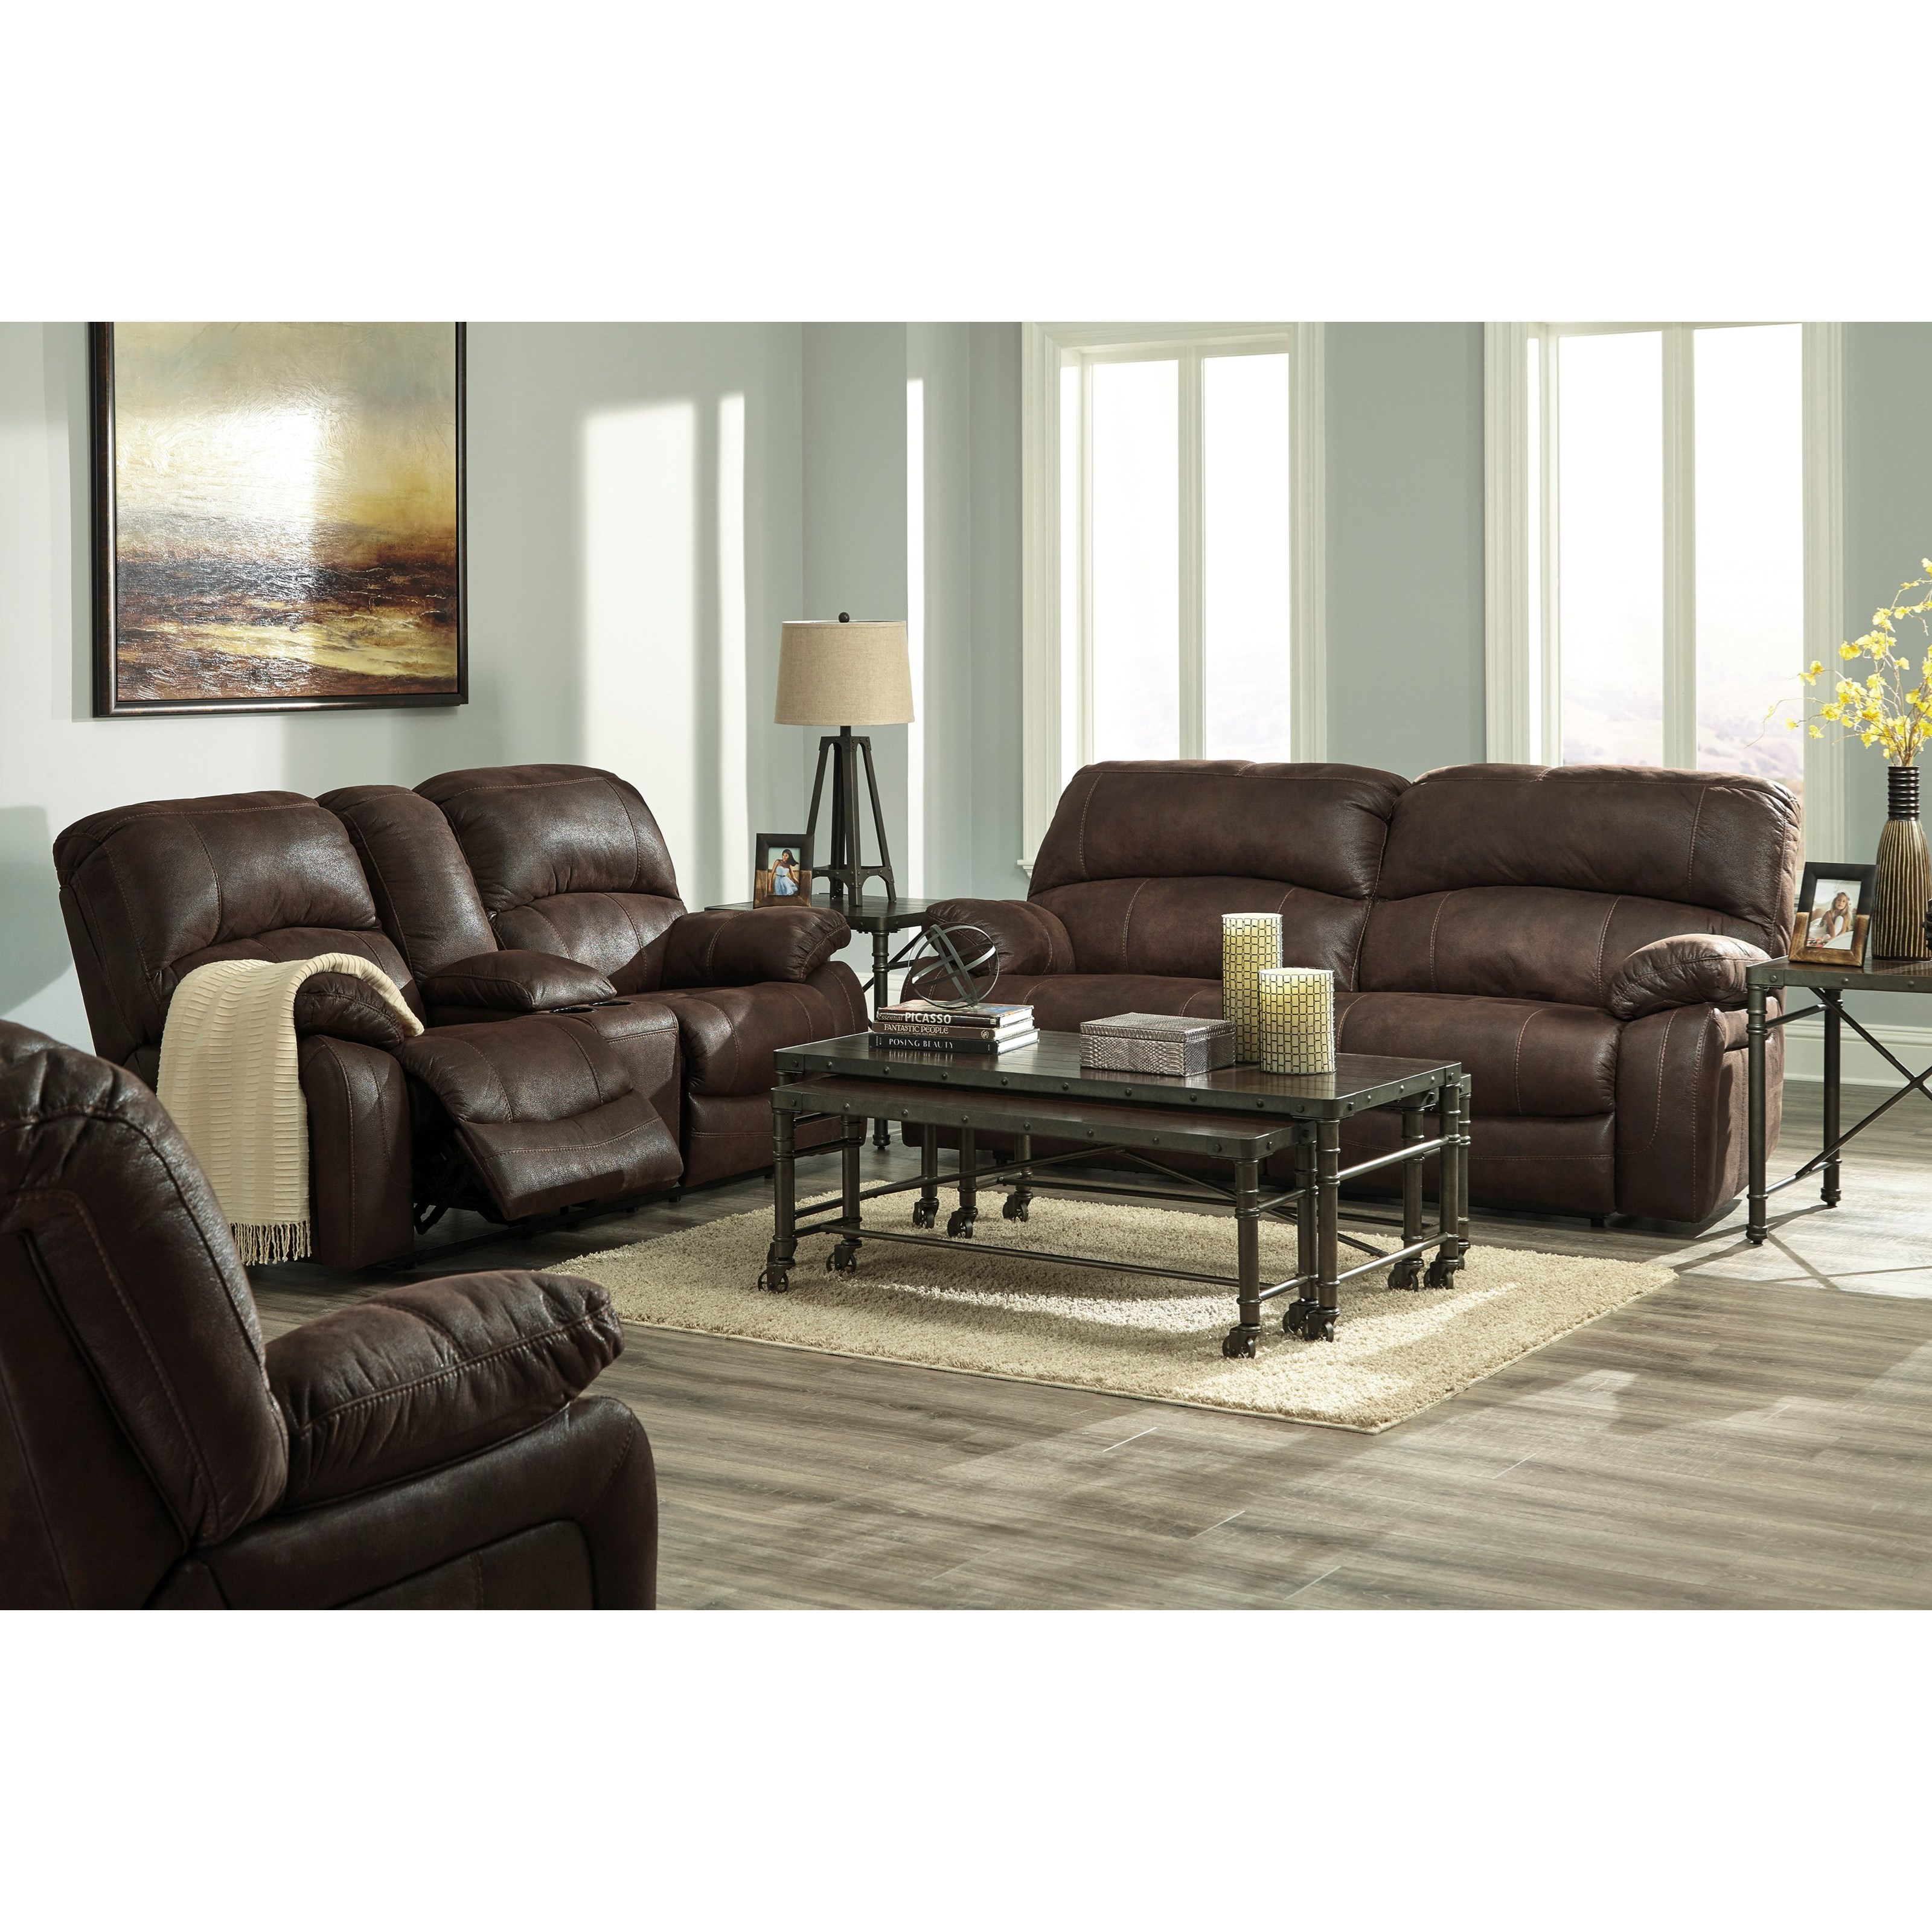 signature design by ashley zavier 2 seat reclining sofa in brown faux leather olinde 39 s. Black Bedroom Furniture Sets. Home Design Ideas